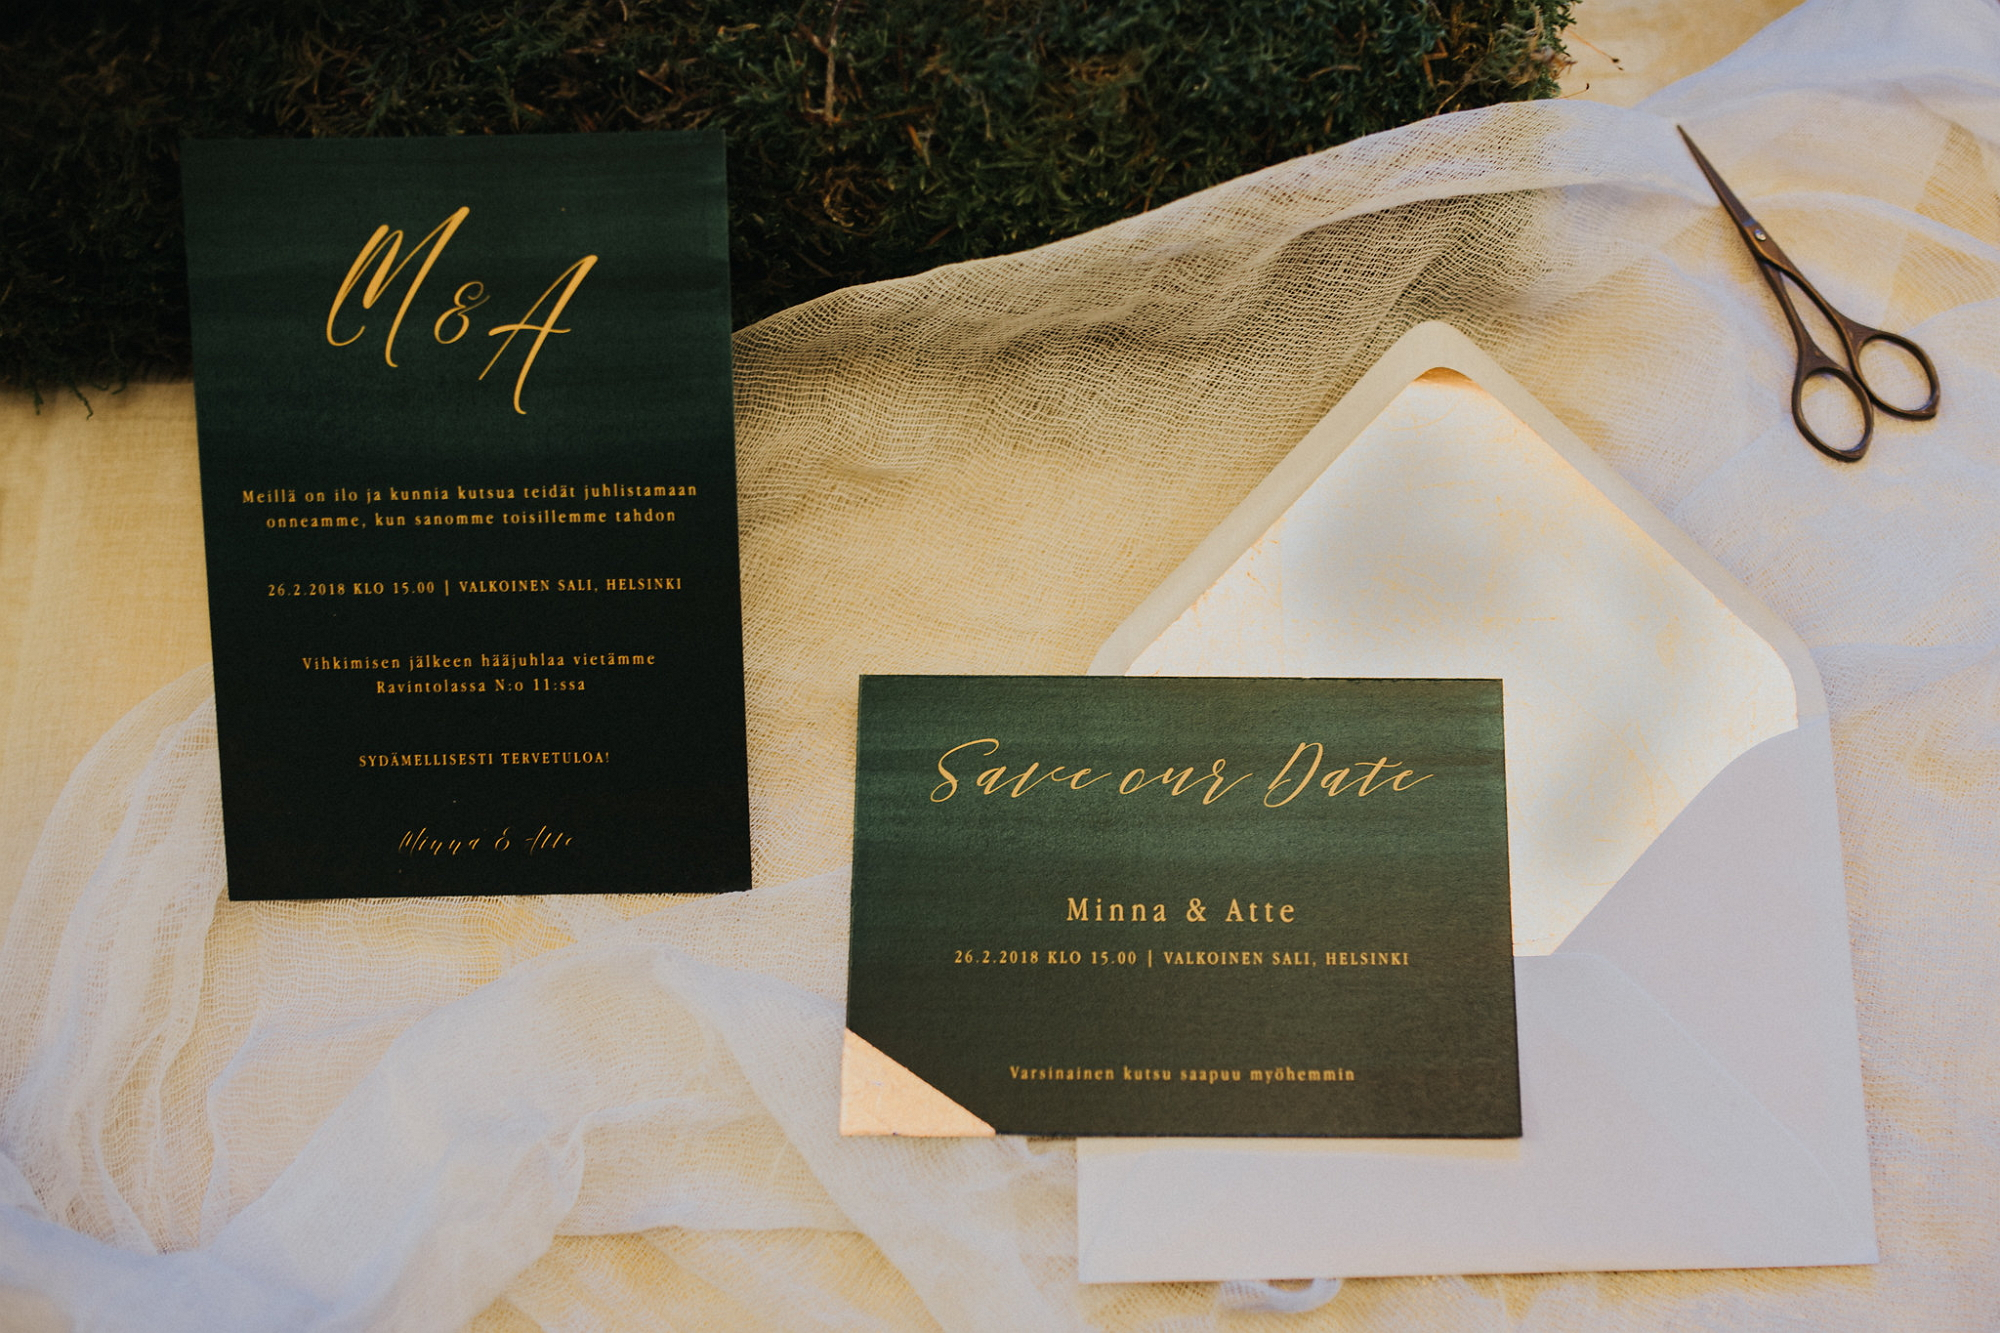 invitation & save the date for a photoshoot, photo by Marissa Tammisalo item